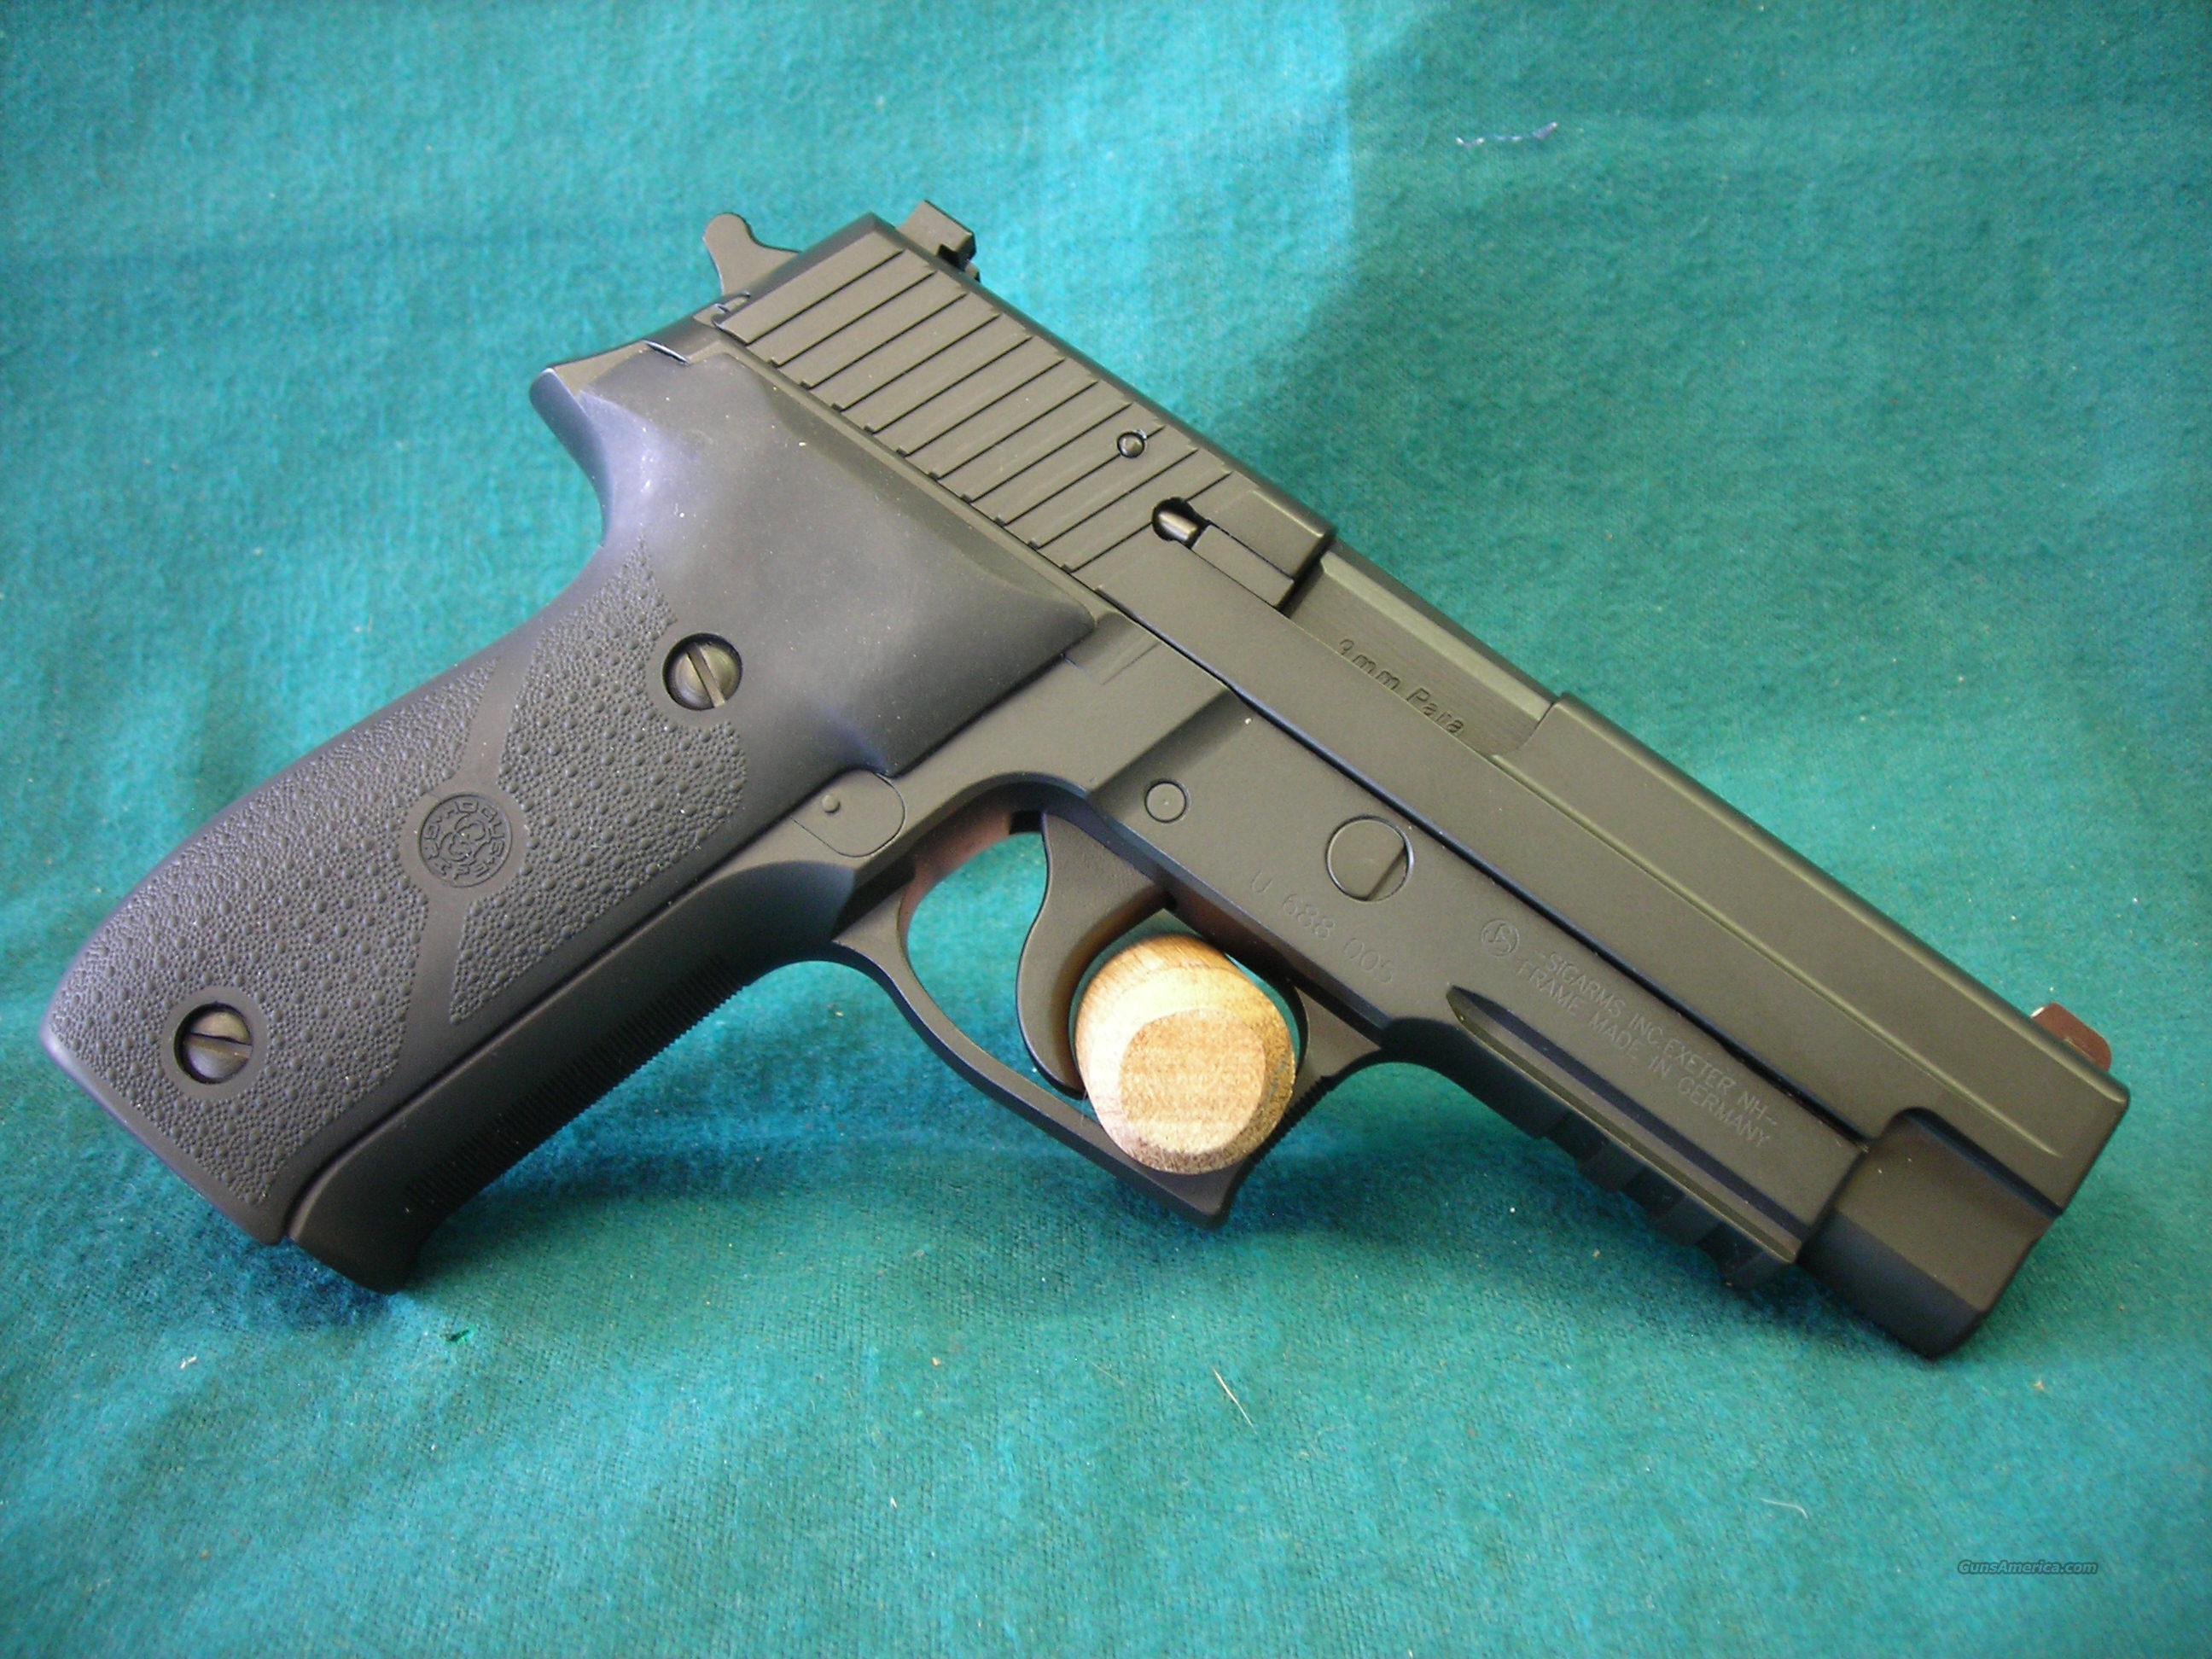 Sig Sauer P226 9mm with extras  Guns > Pistols > Sig - Sauer/Sigarms Pistols > P226